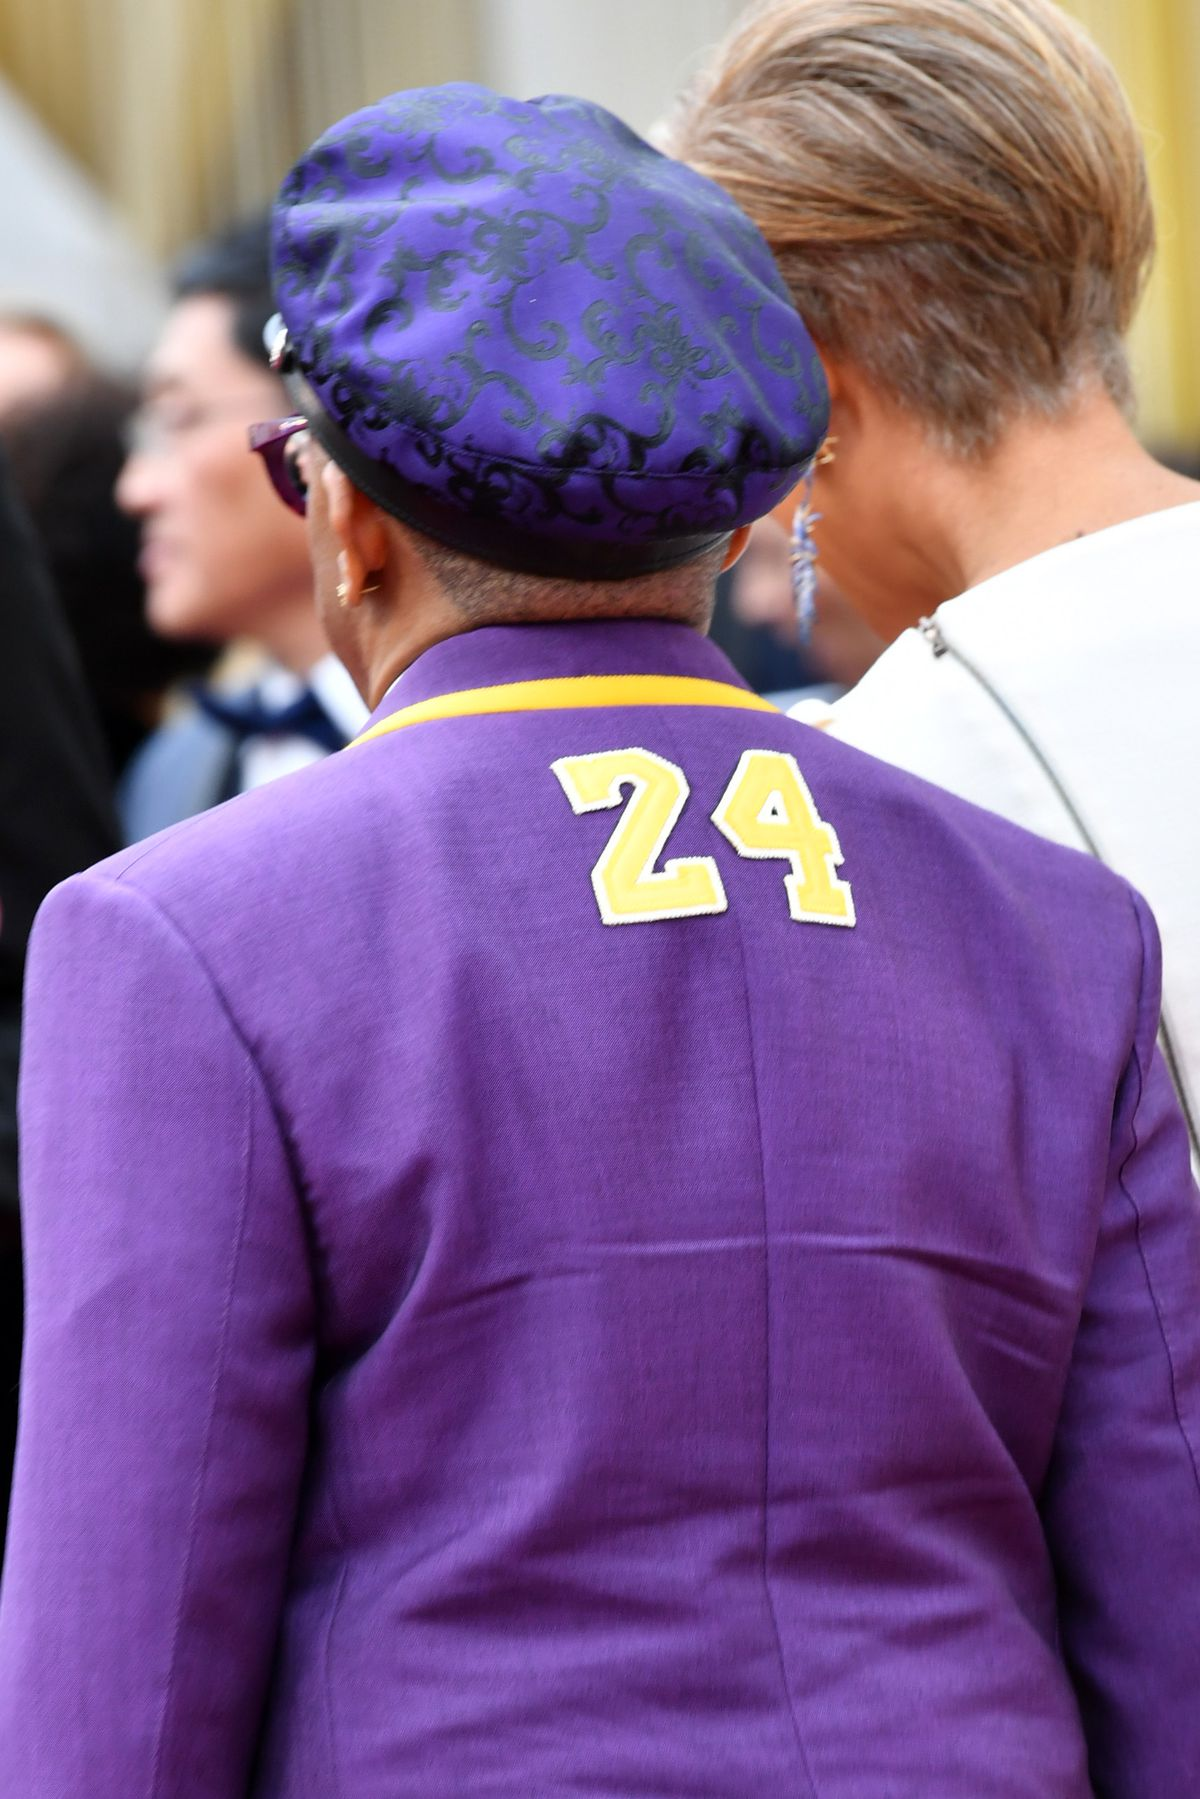 Spike Lee arrives at the Academy Awards on Sunday night, wearing a purple and gold tribute to No. 24, Kobe Bryant.